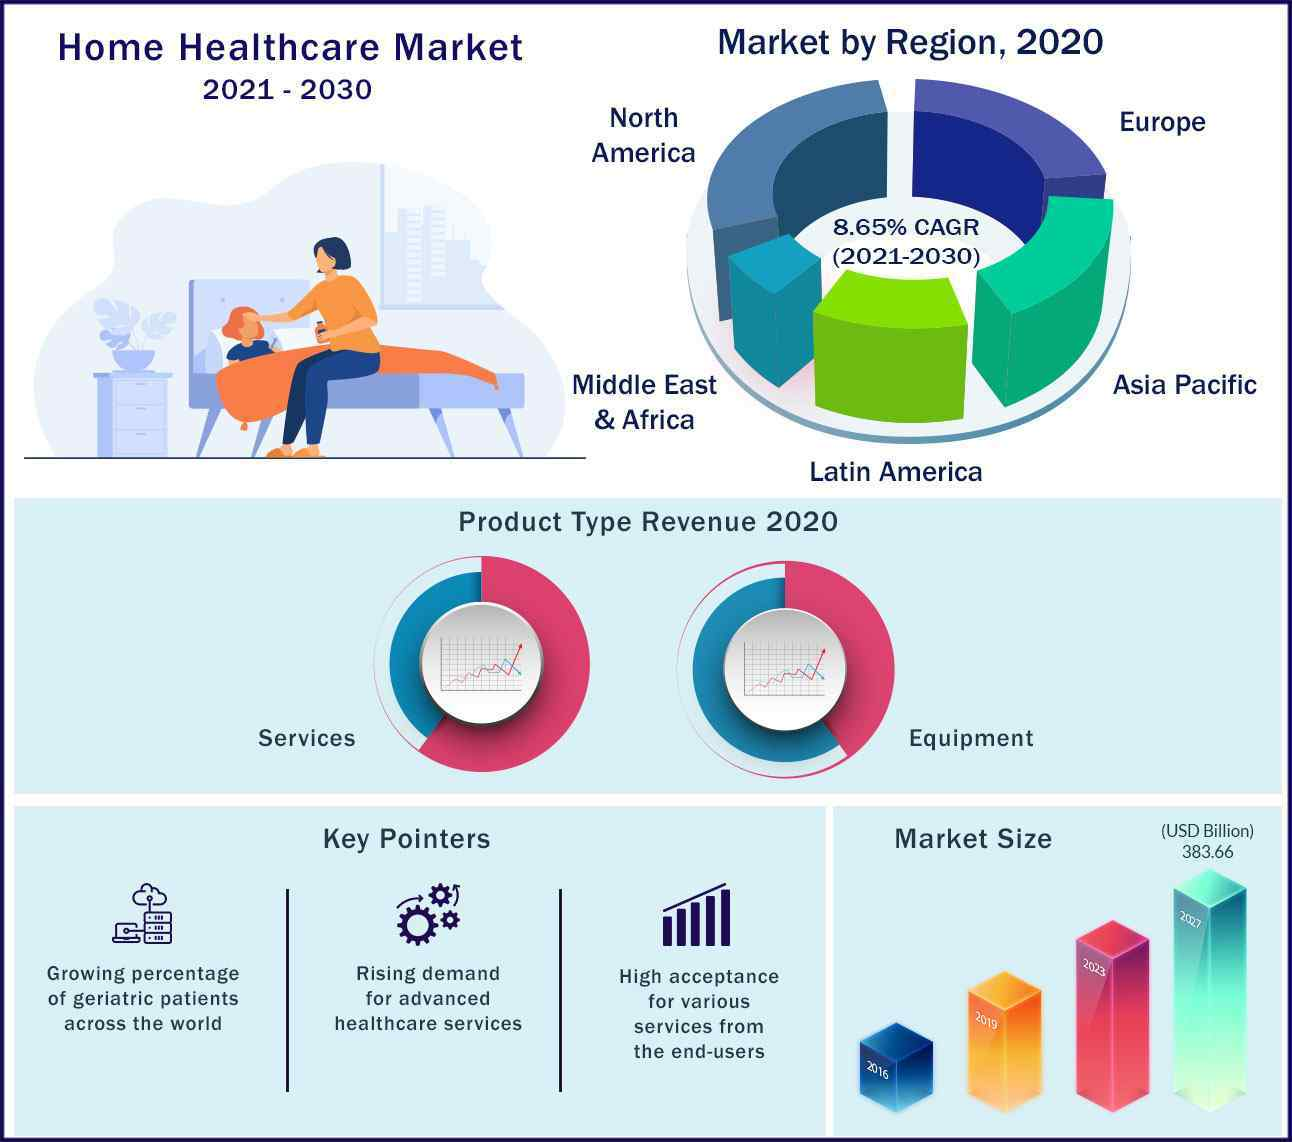 Global Home Healthcare Market 2021 to 2030